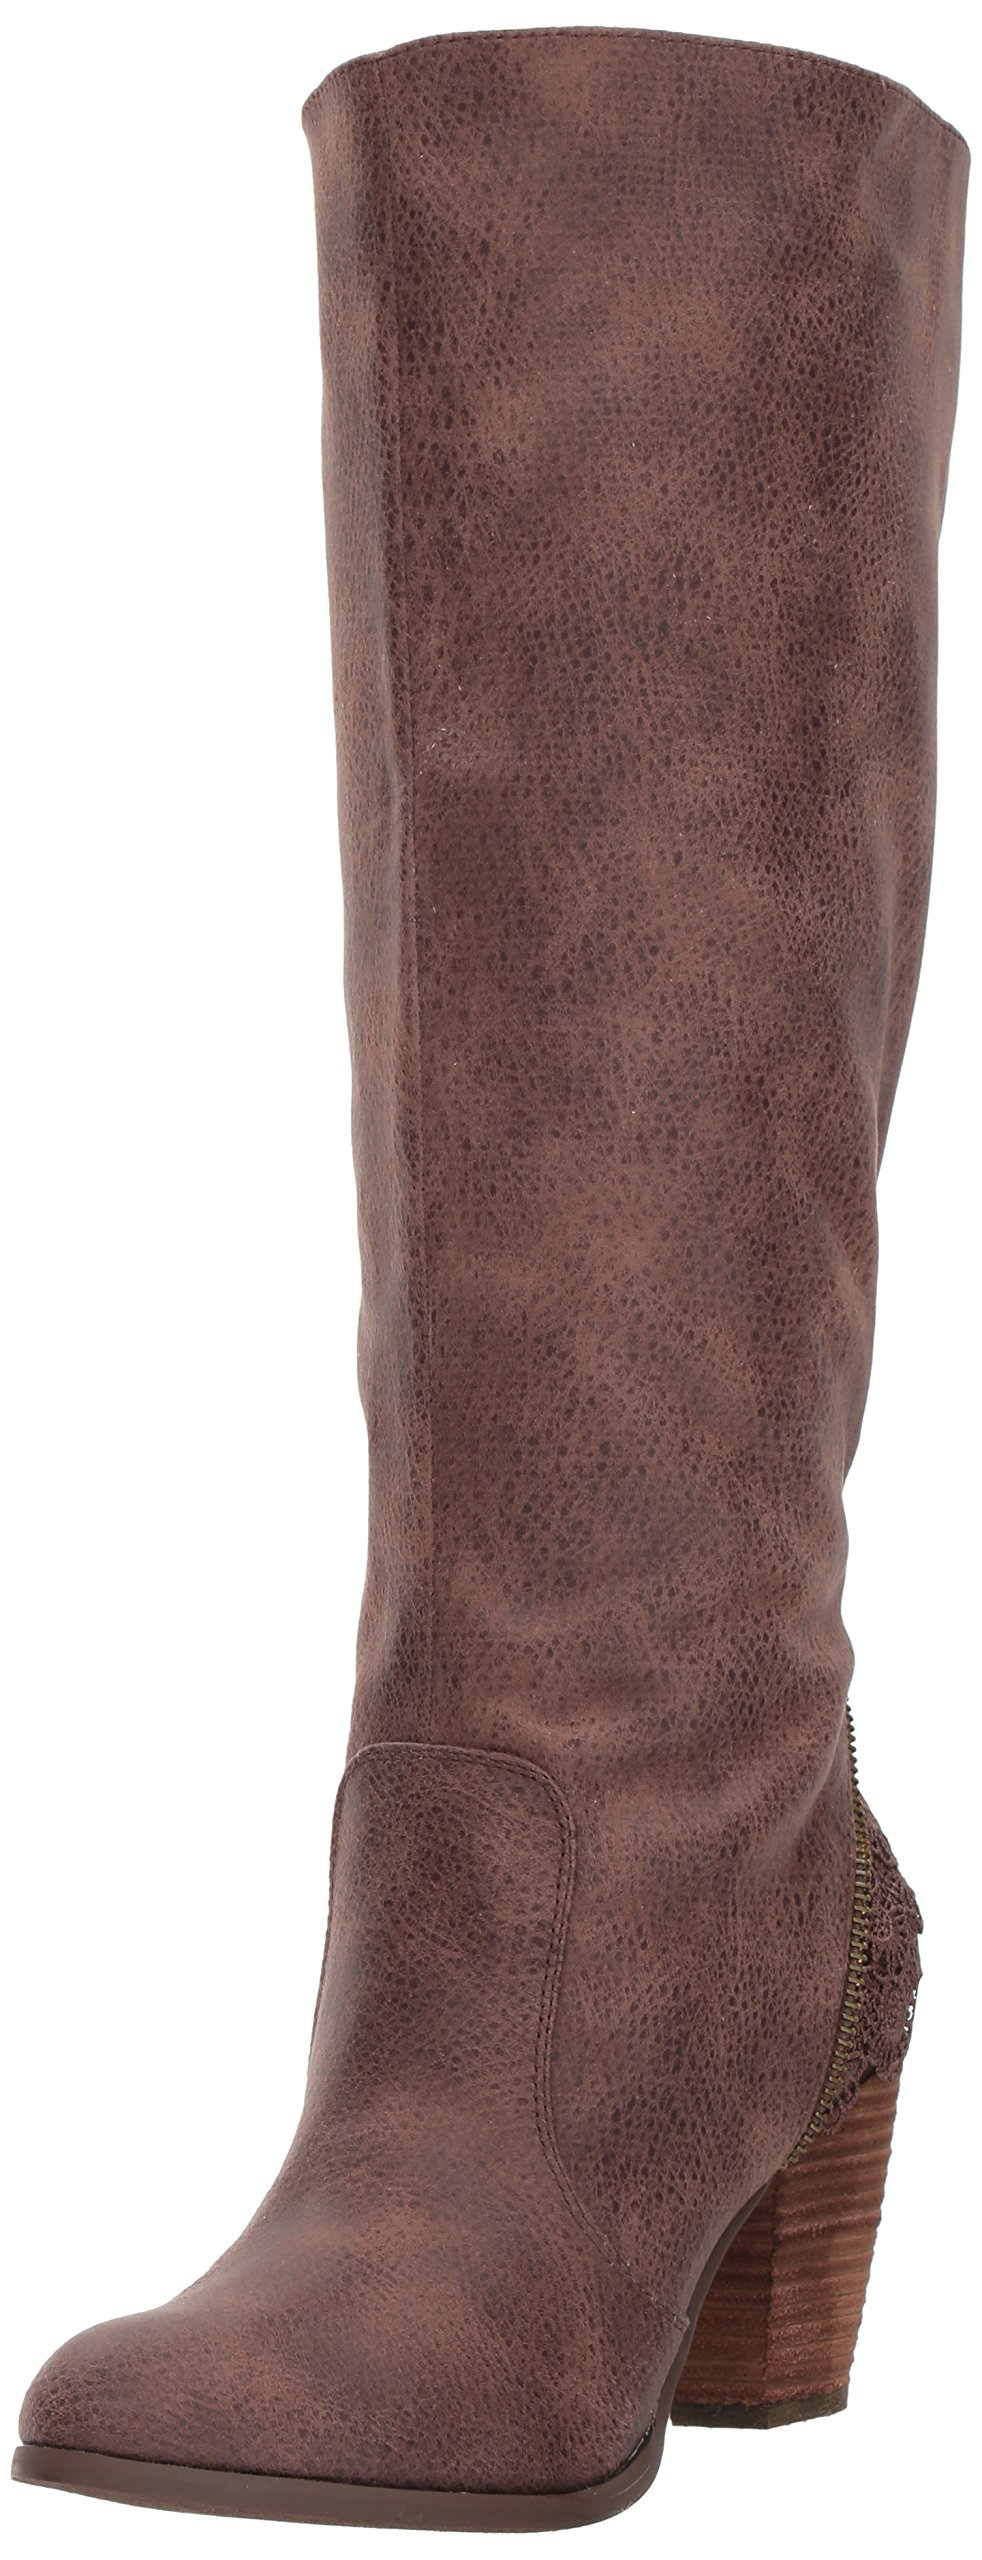 Not Rated Women's Sass It up Riding Boot, Brown, 10 M US